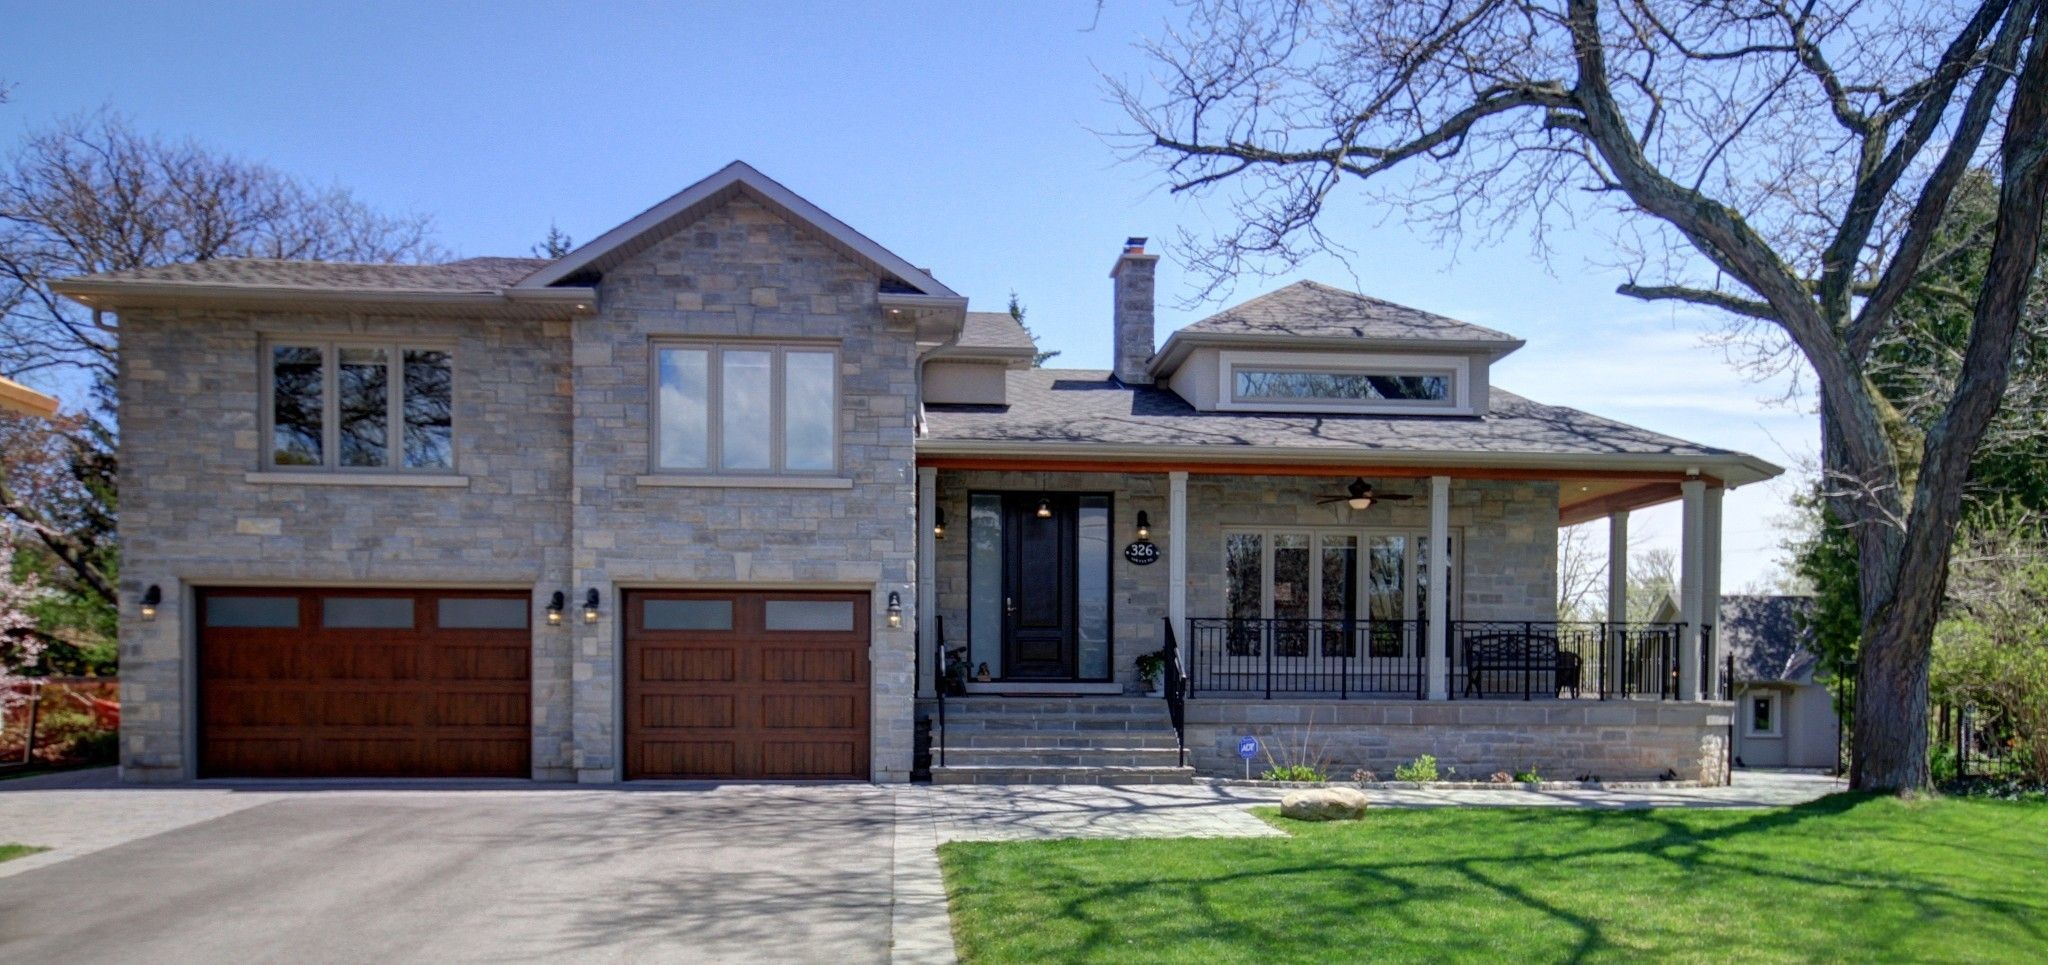 Main Photo: 326 Sawyer Road in Oakville: Bronte West Freehold for sale : MLS®# W3502435